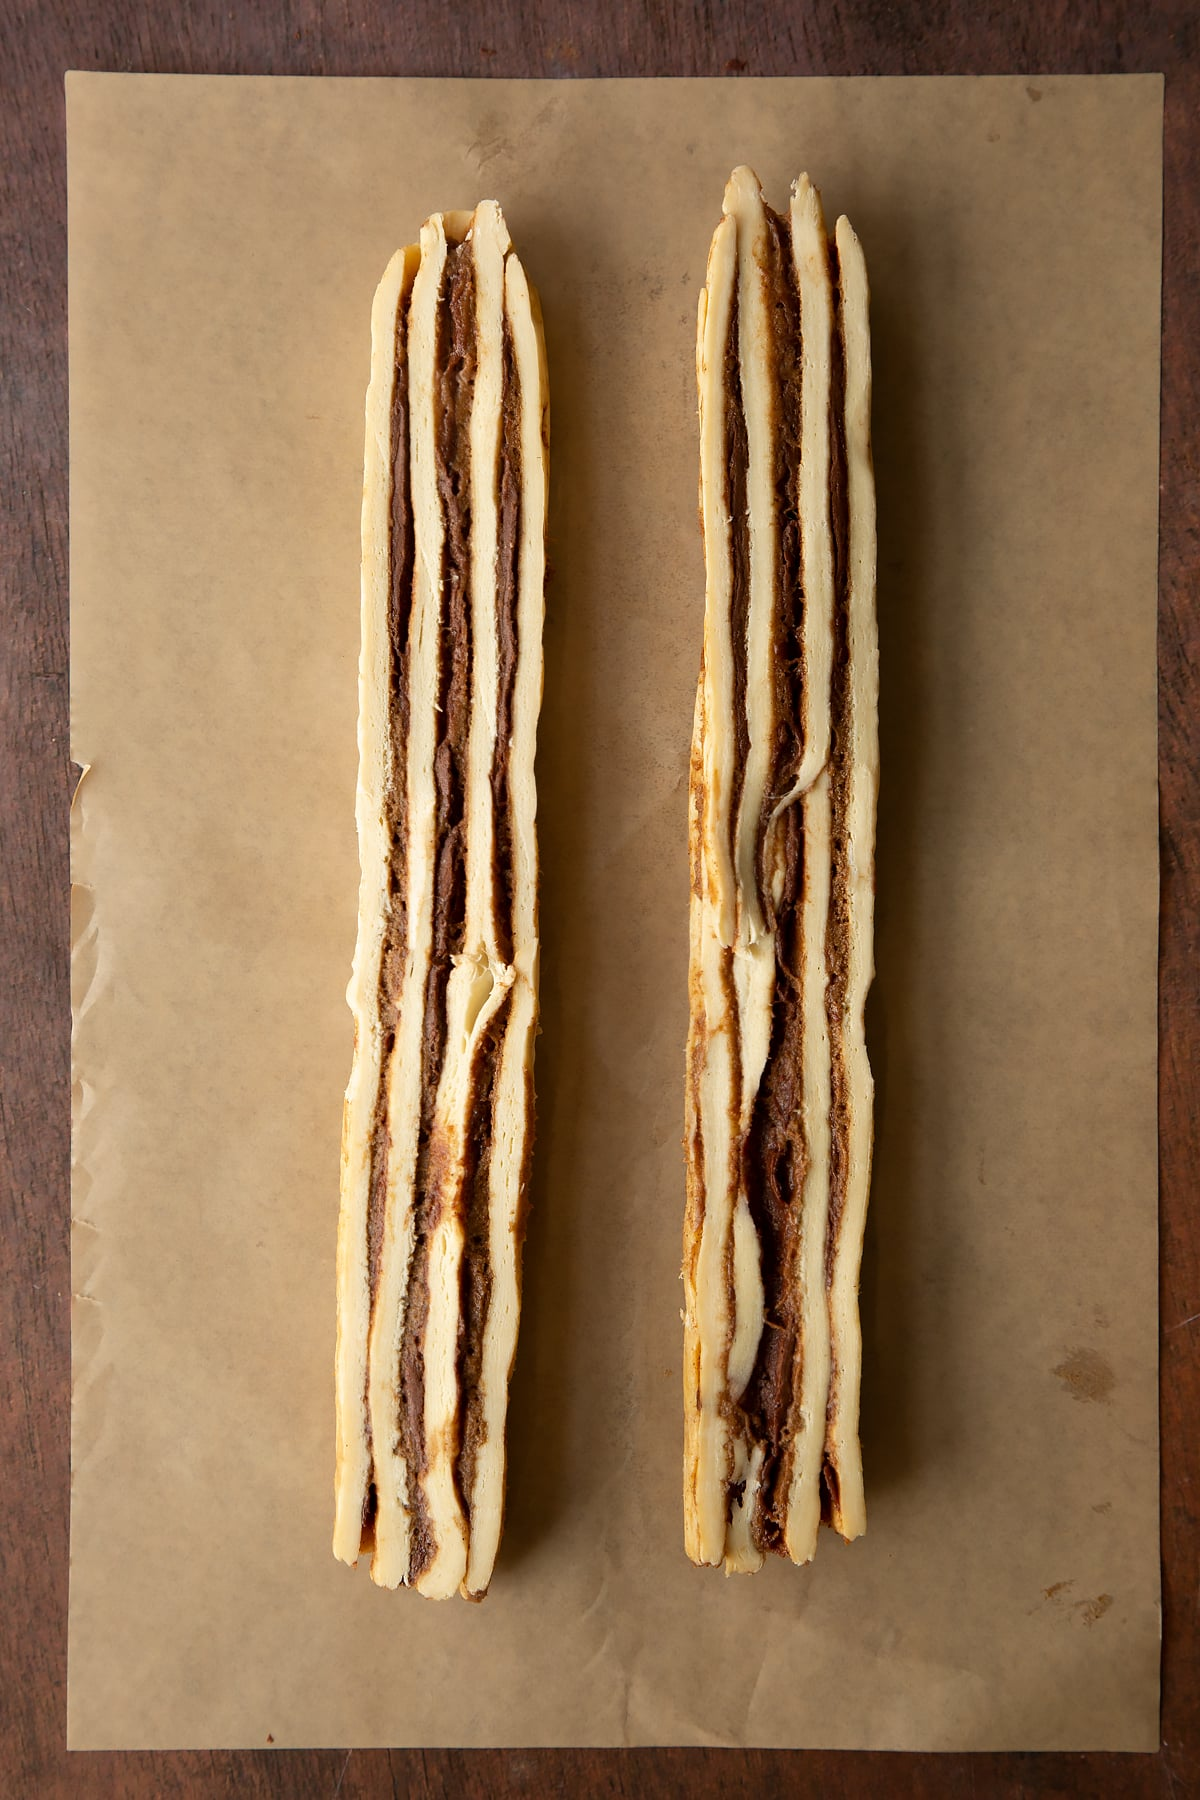 Cinnamon swirl dough rolled along the length to create a long sausage, then sliced down the length to create two striped pieces.